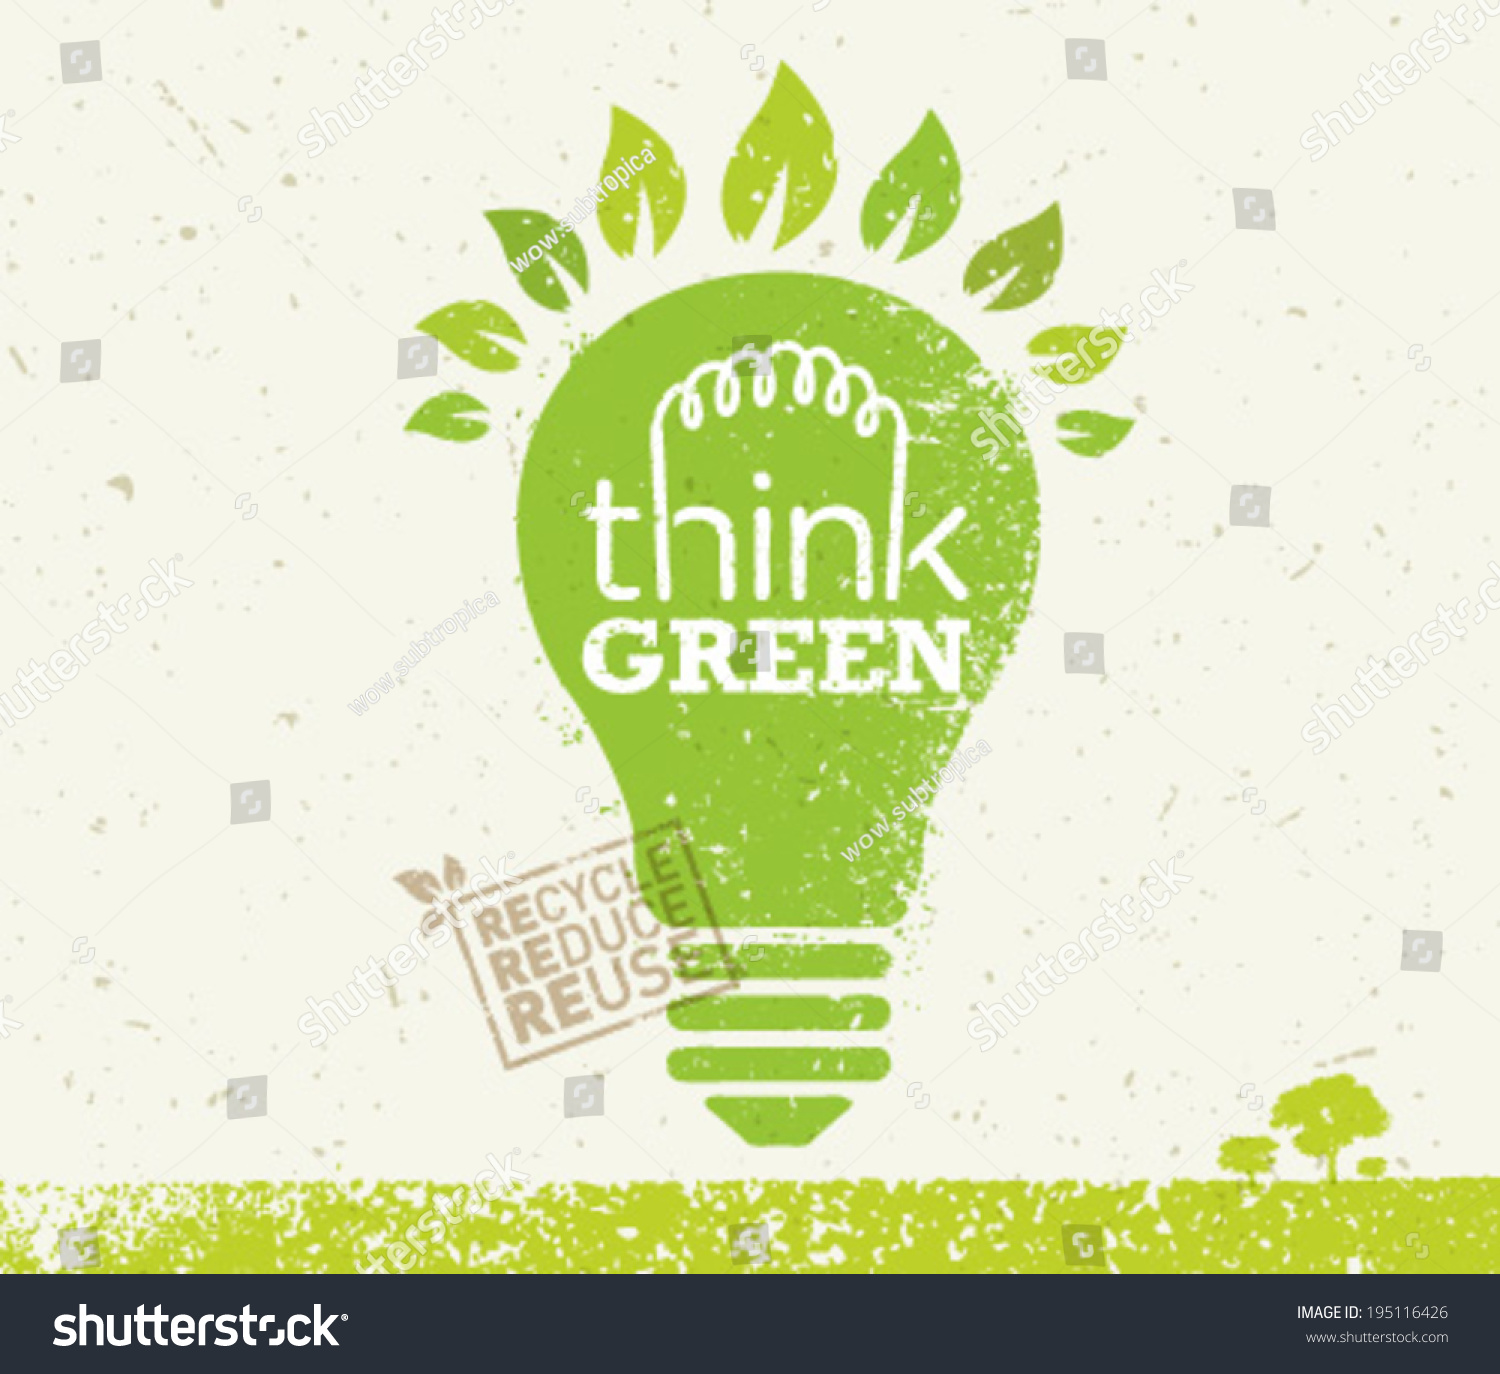 About paper s ecological footprint design and paper - Think Green Recycle Reduce Reuse Eco Stock Vector